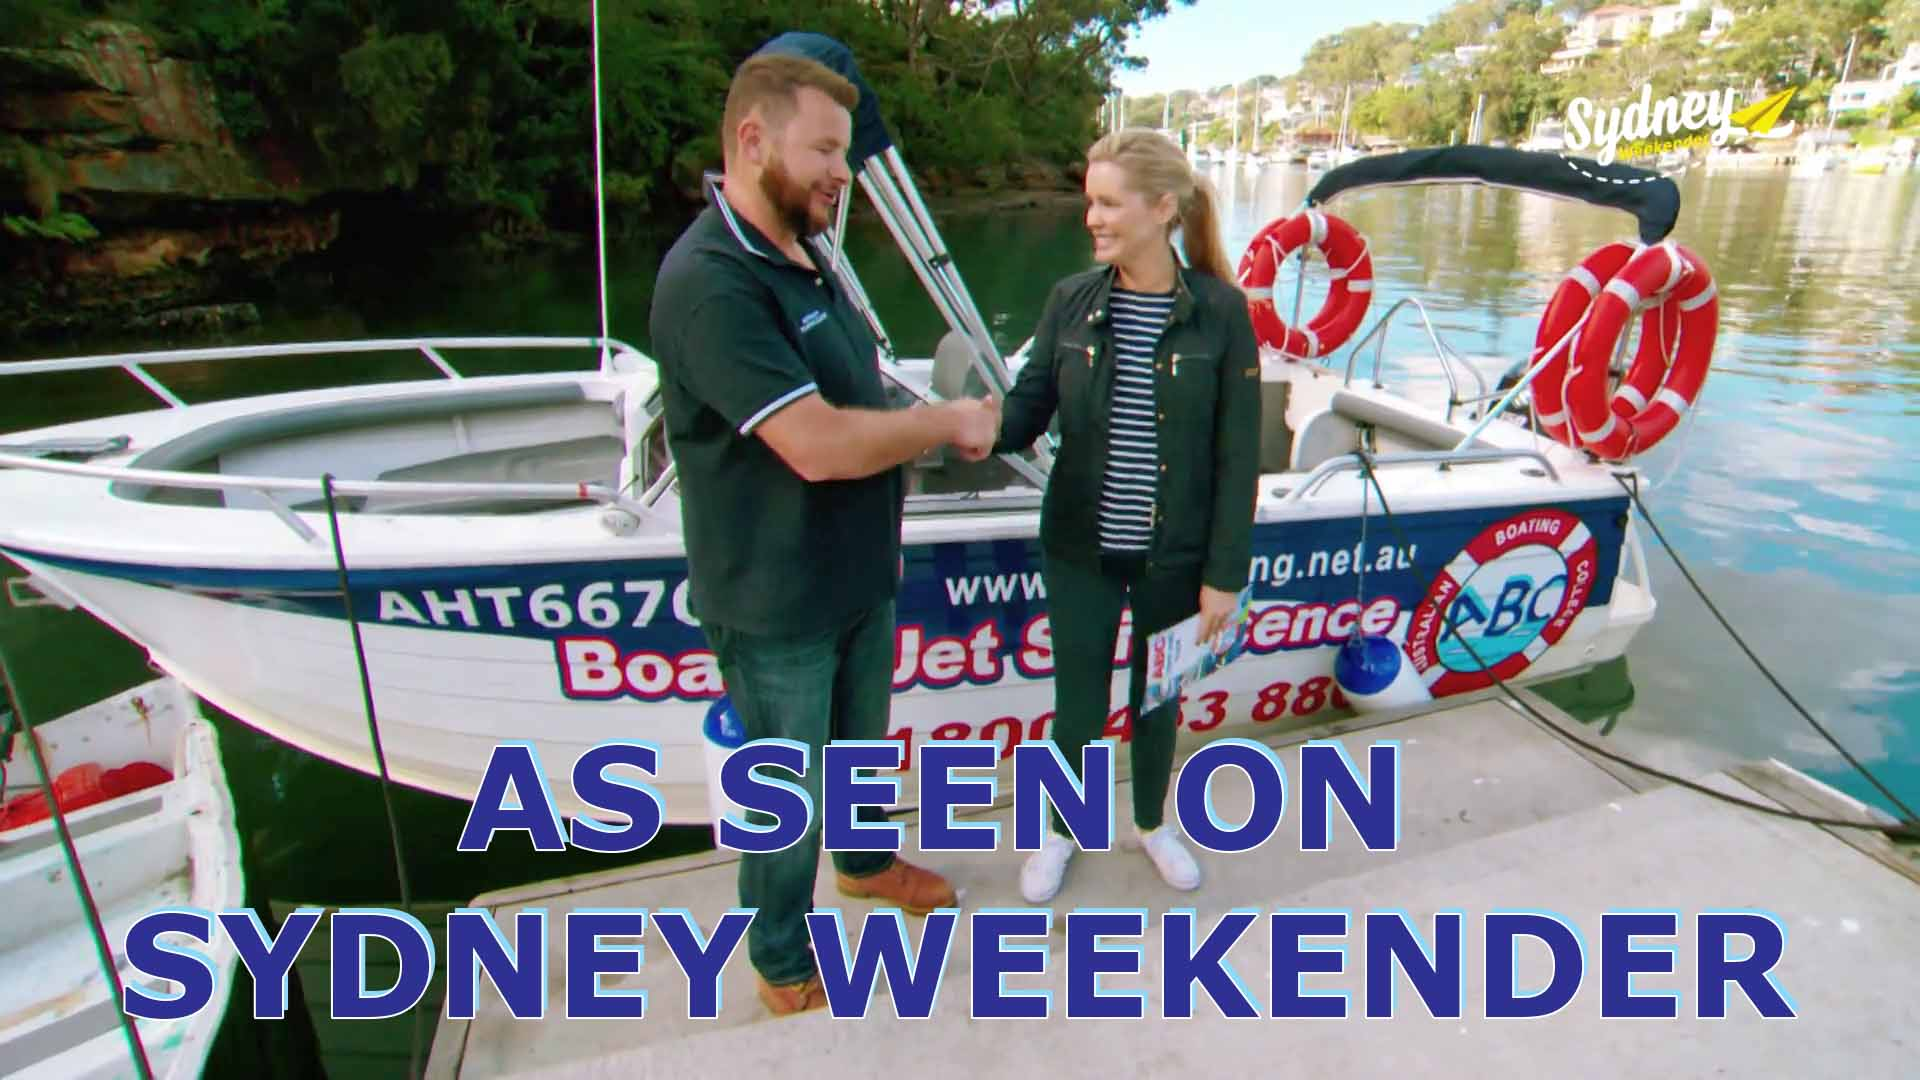 Australian Boating College on Sydney Weekender